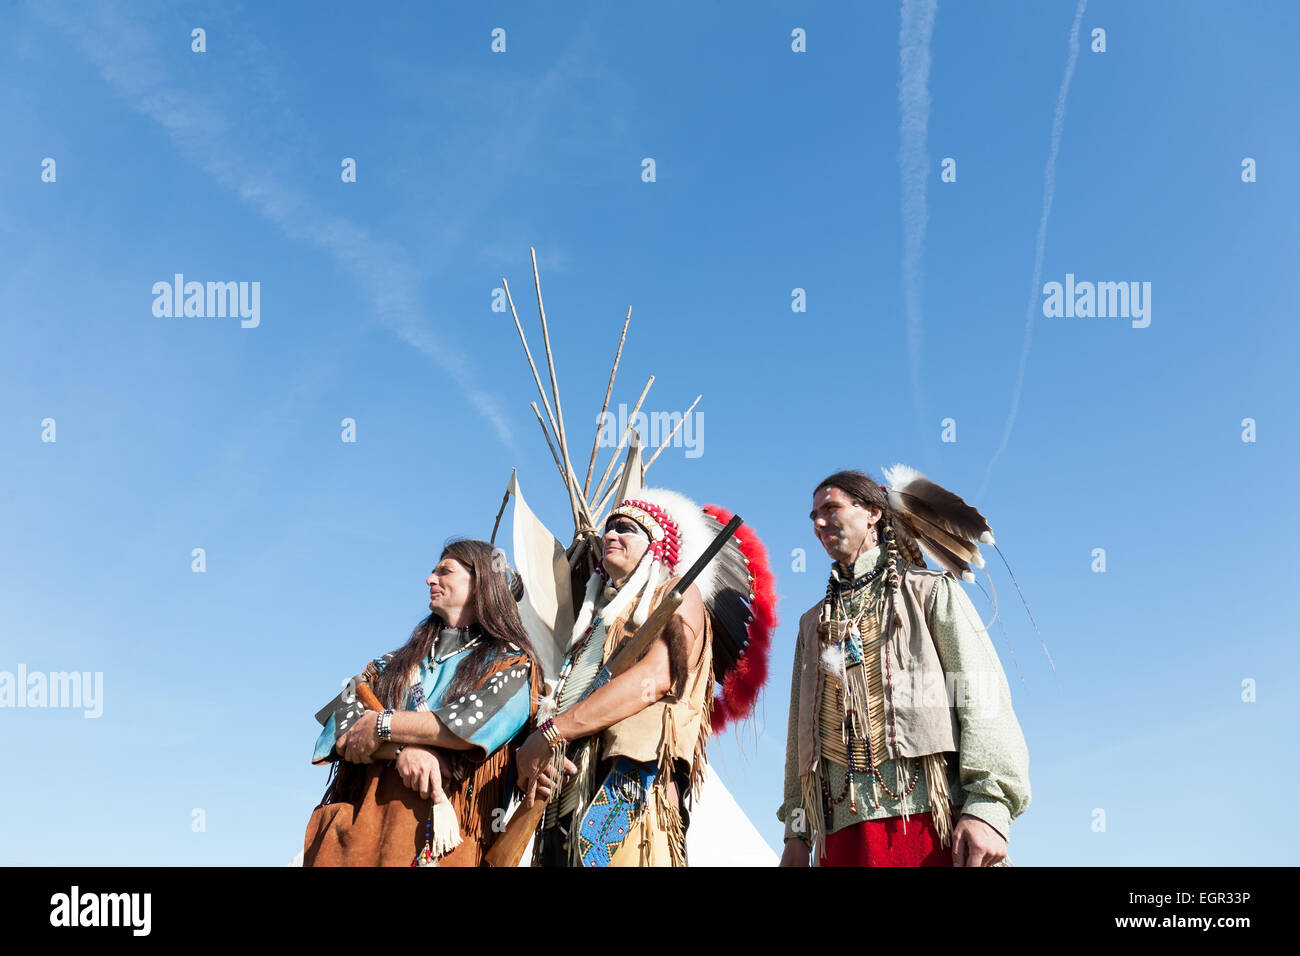 Group of North American Indians against the blue sky - Stock Image